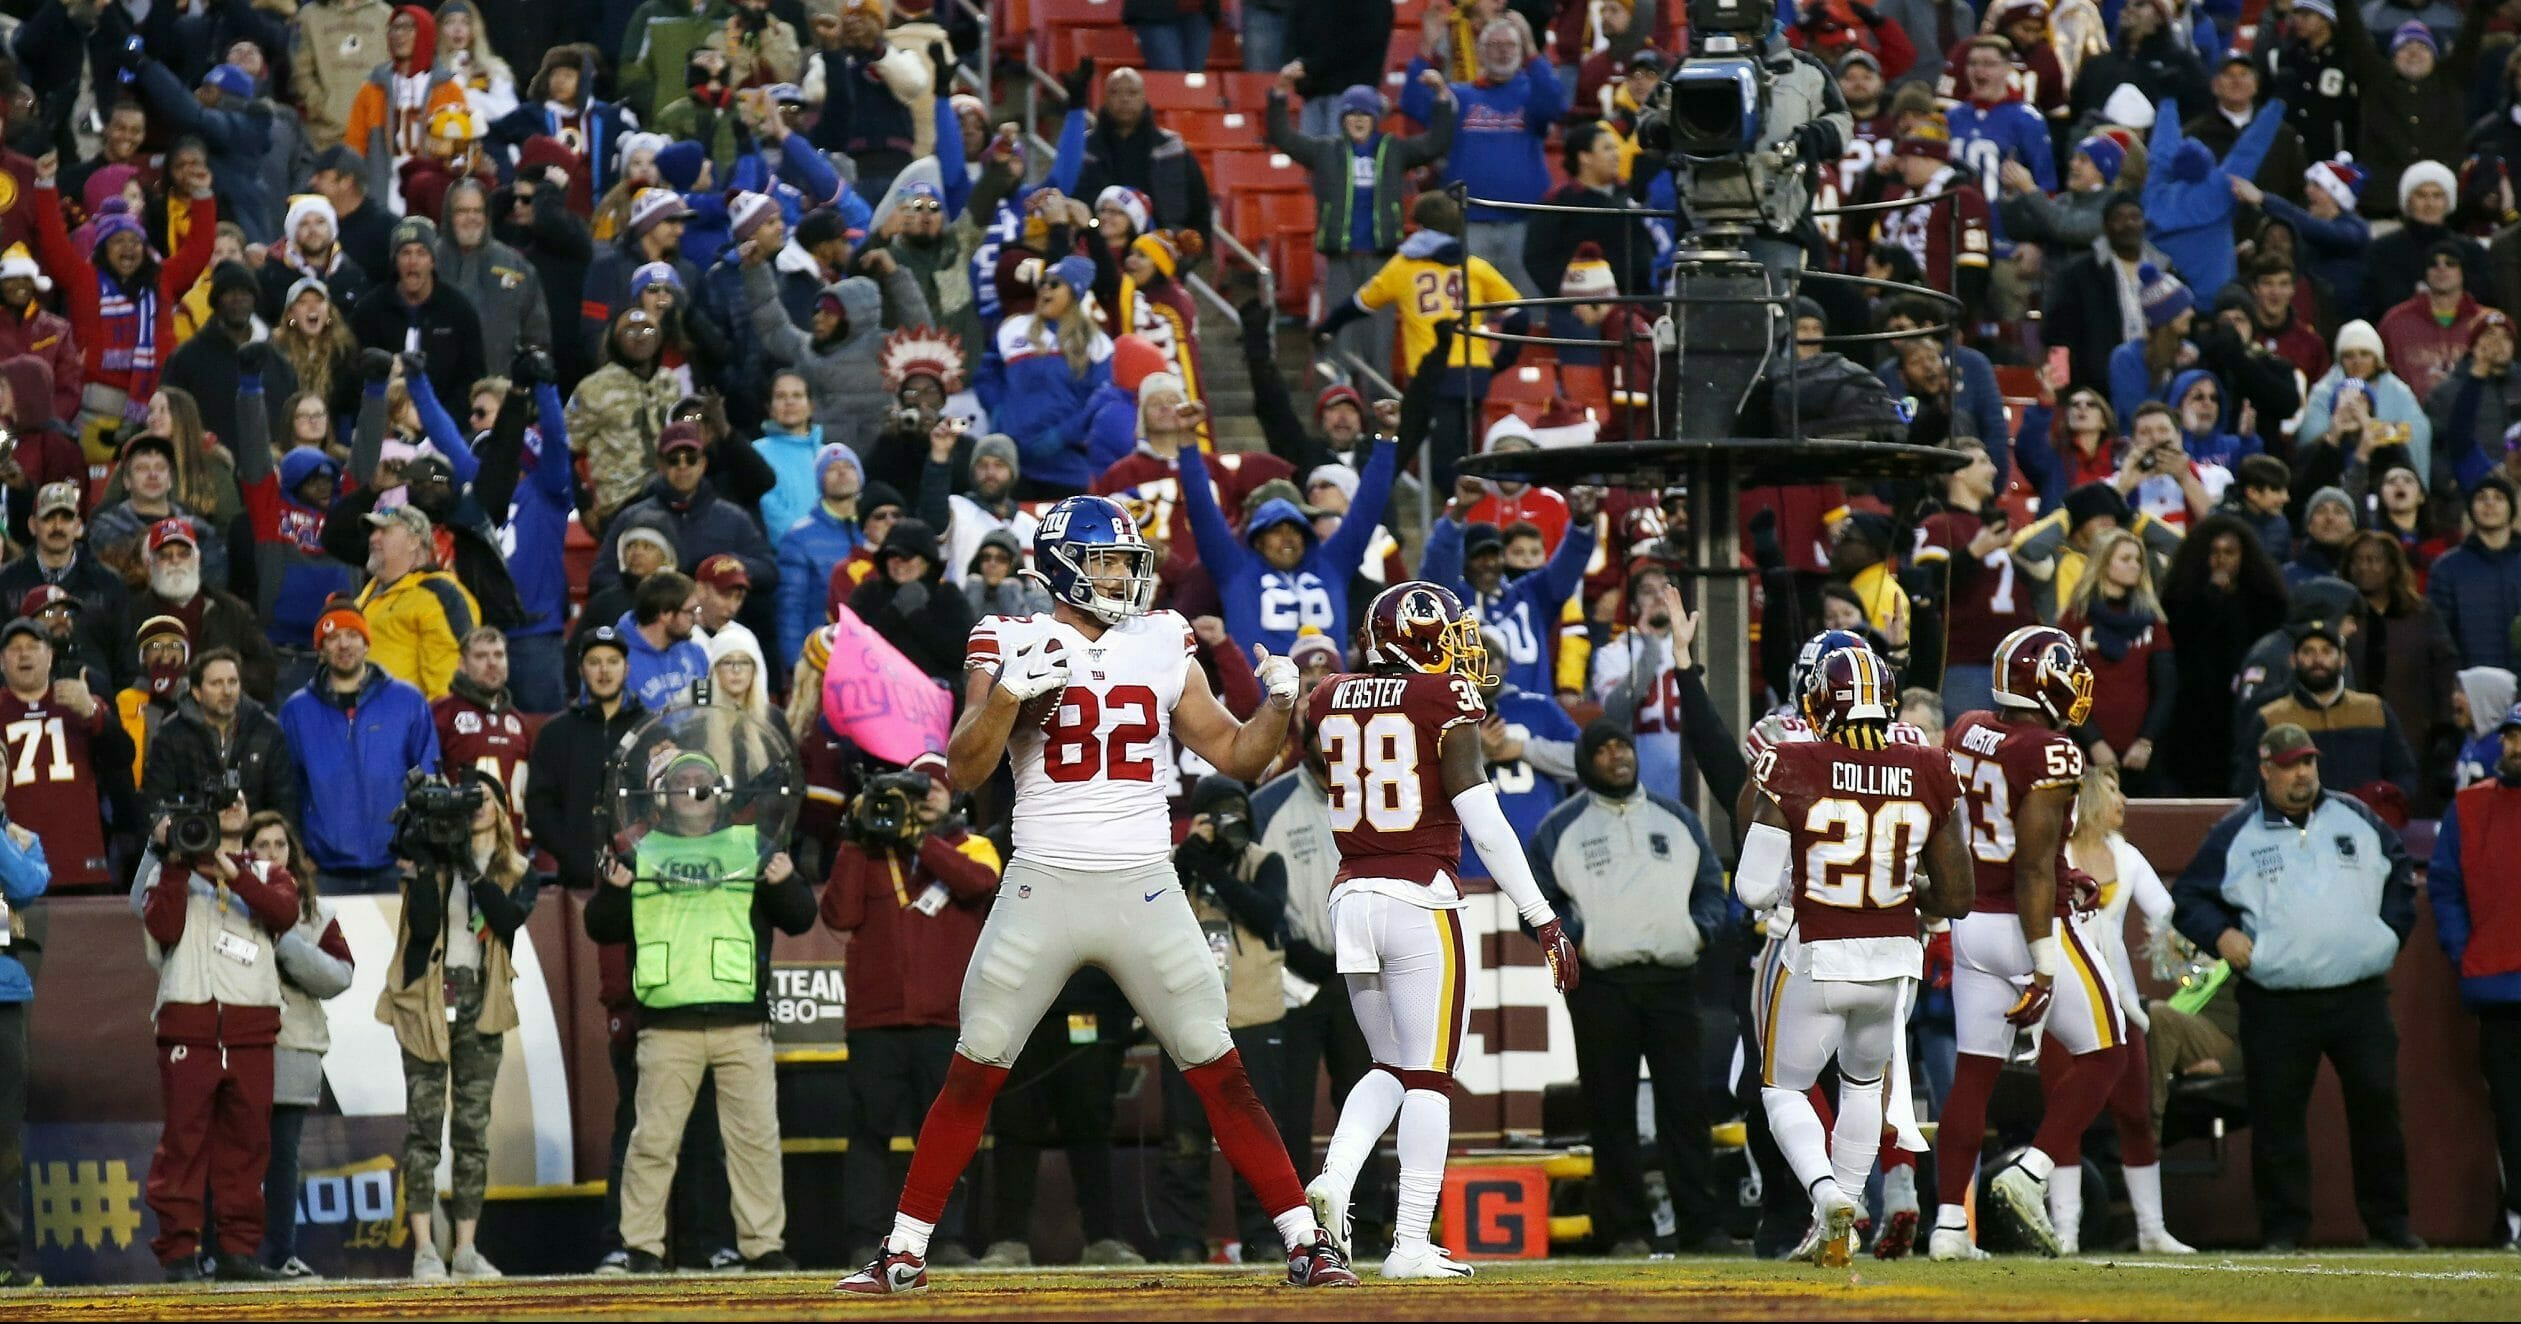 Fans react along with New York Giants tight end Kaden Smith after he caught a game-winning touchdown pass from quarterback Daniel Jones in overtime of a game against the Washington Redskins on Dec. 22, 2019, in Landover, Maryland.